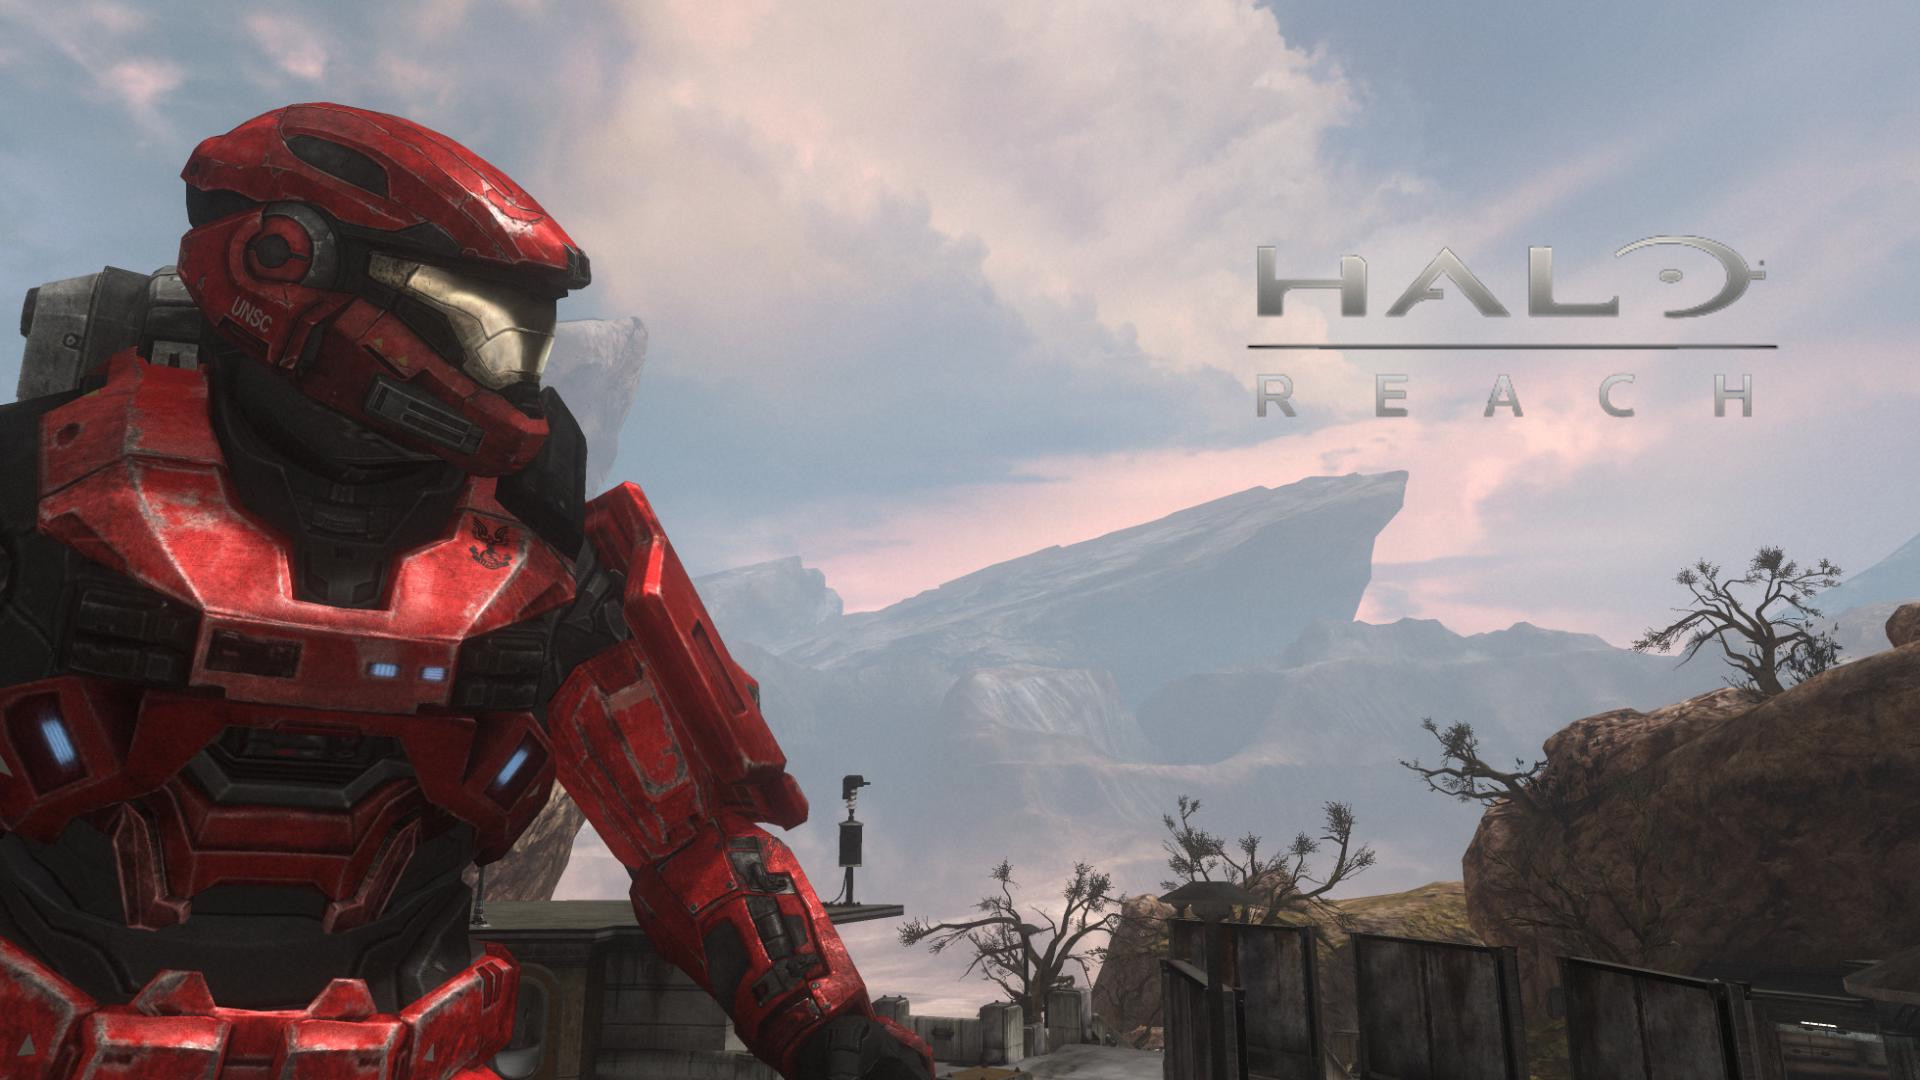 1920x1080 Halo Reach Backgrounds.